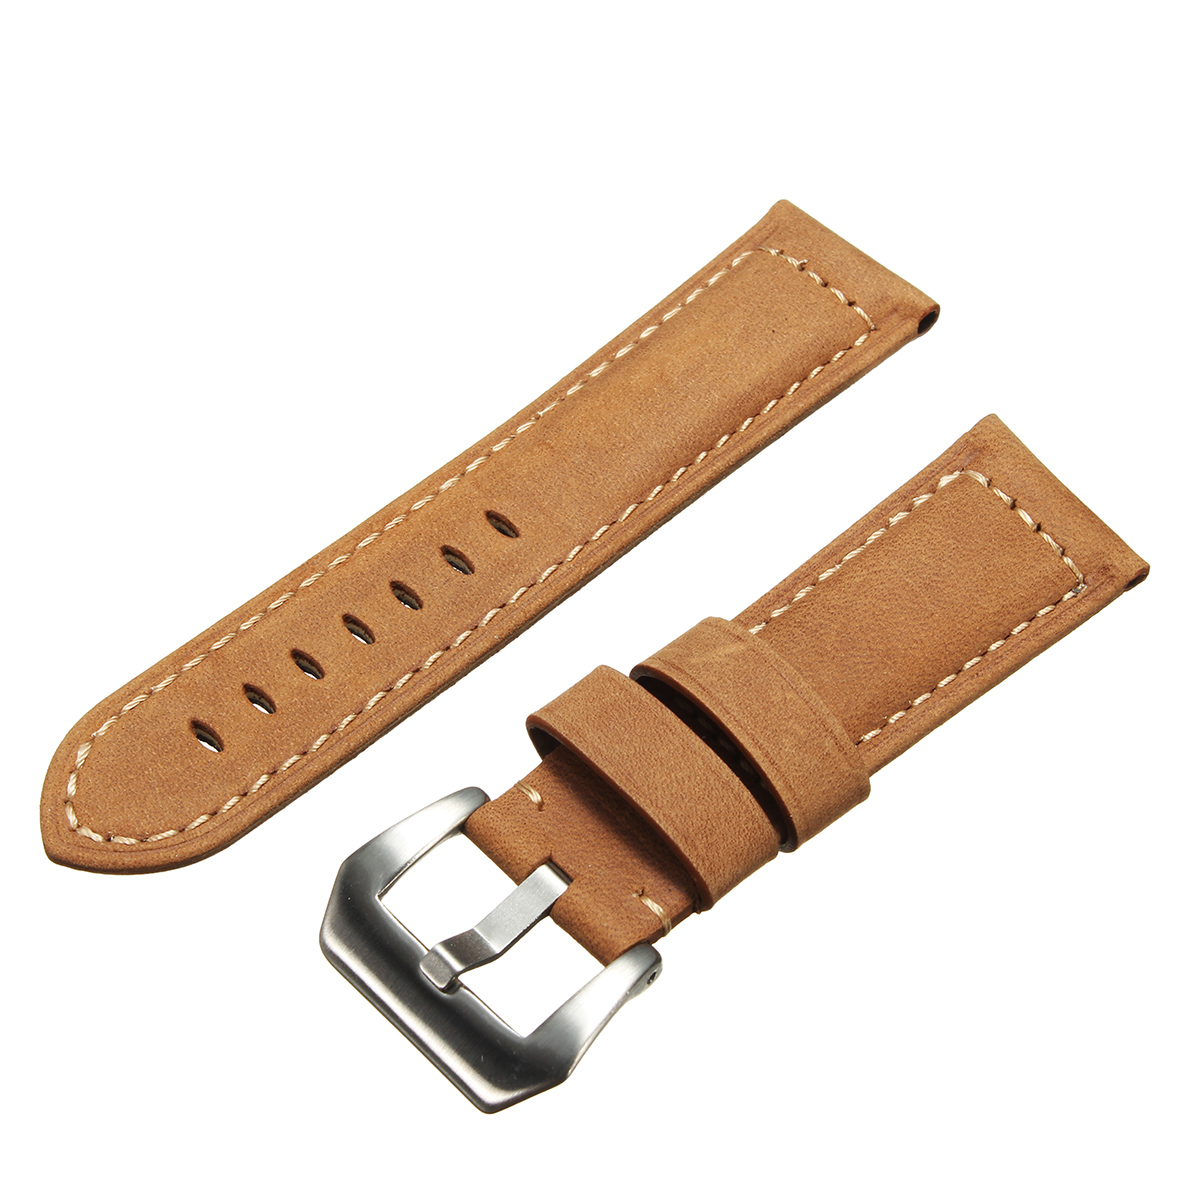 Mens Leather Watch Band Strap 22 24mm Dark / Light Brown for Panerai iWatch